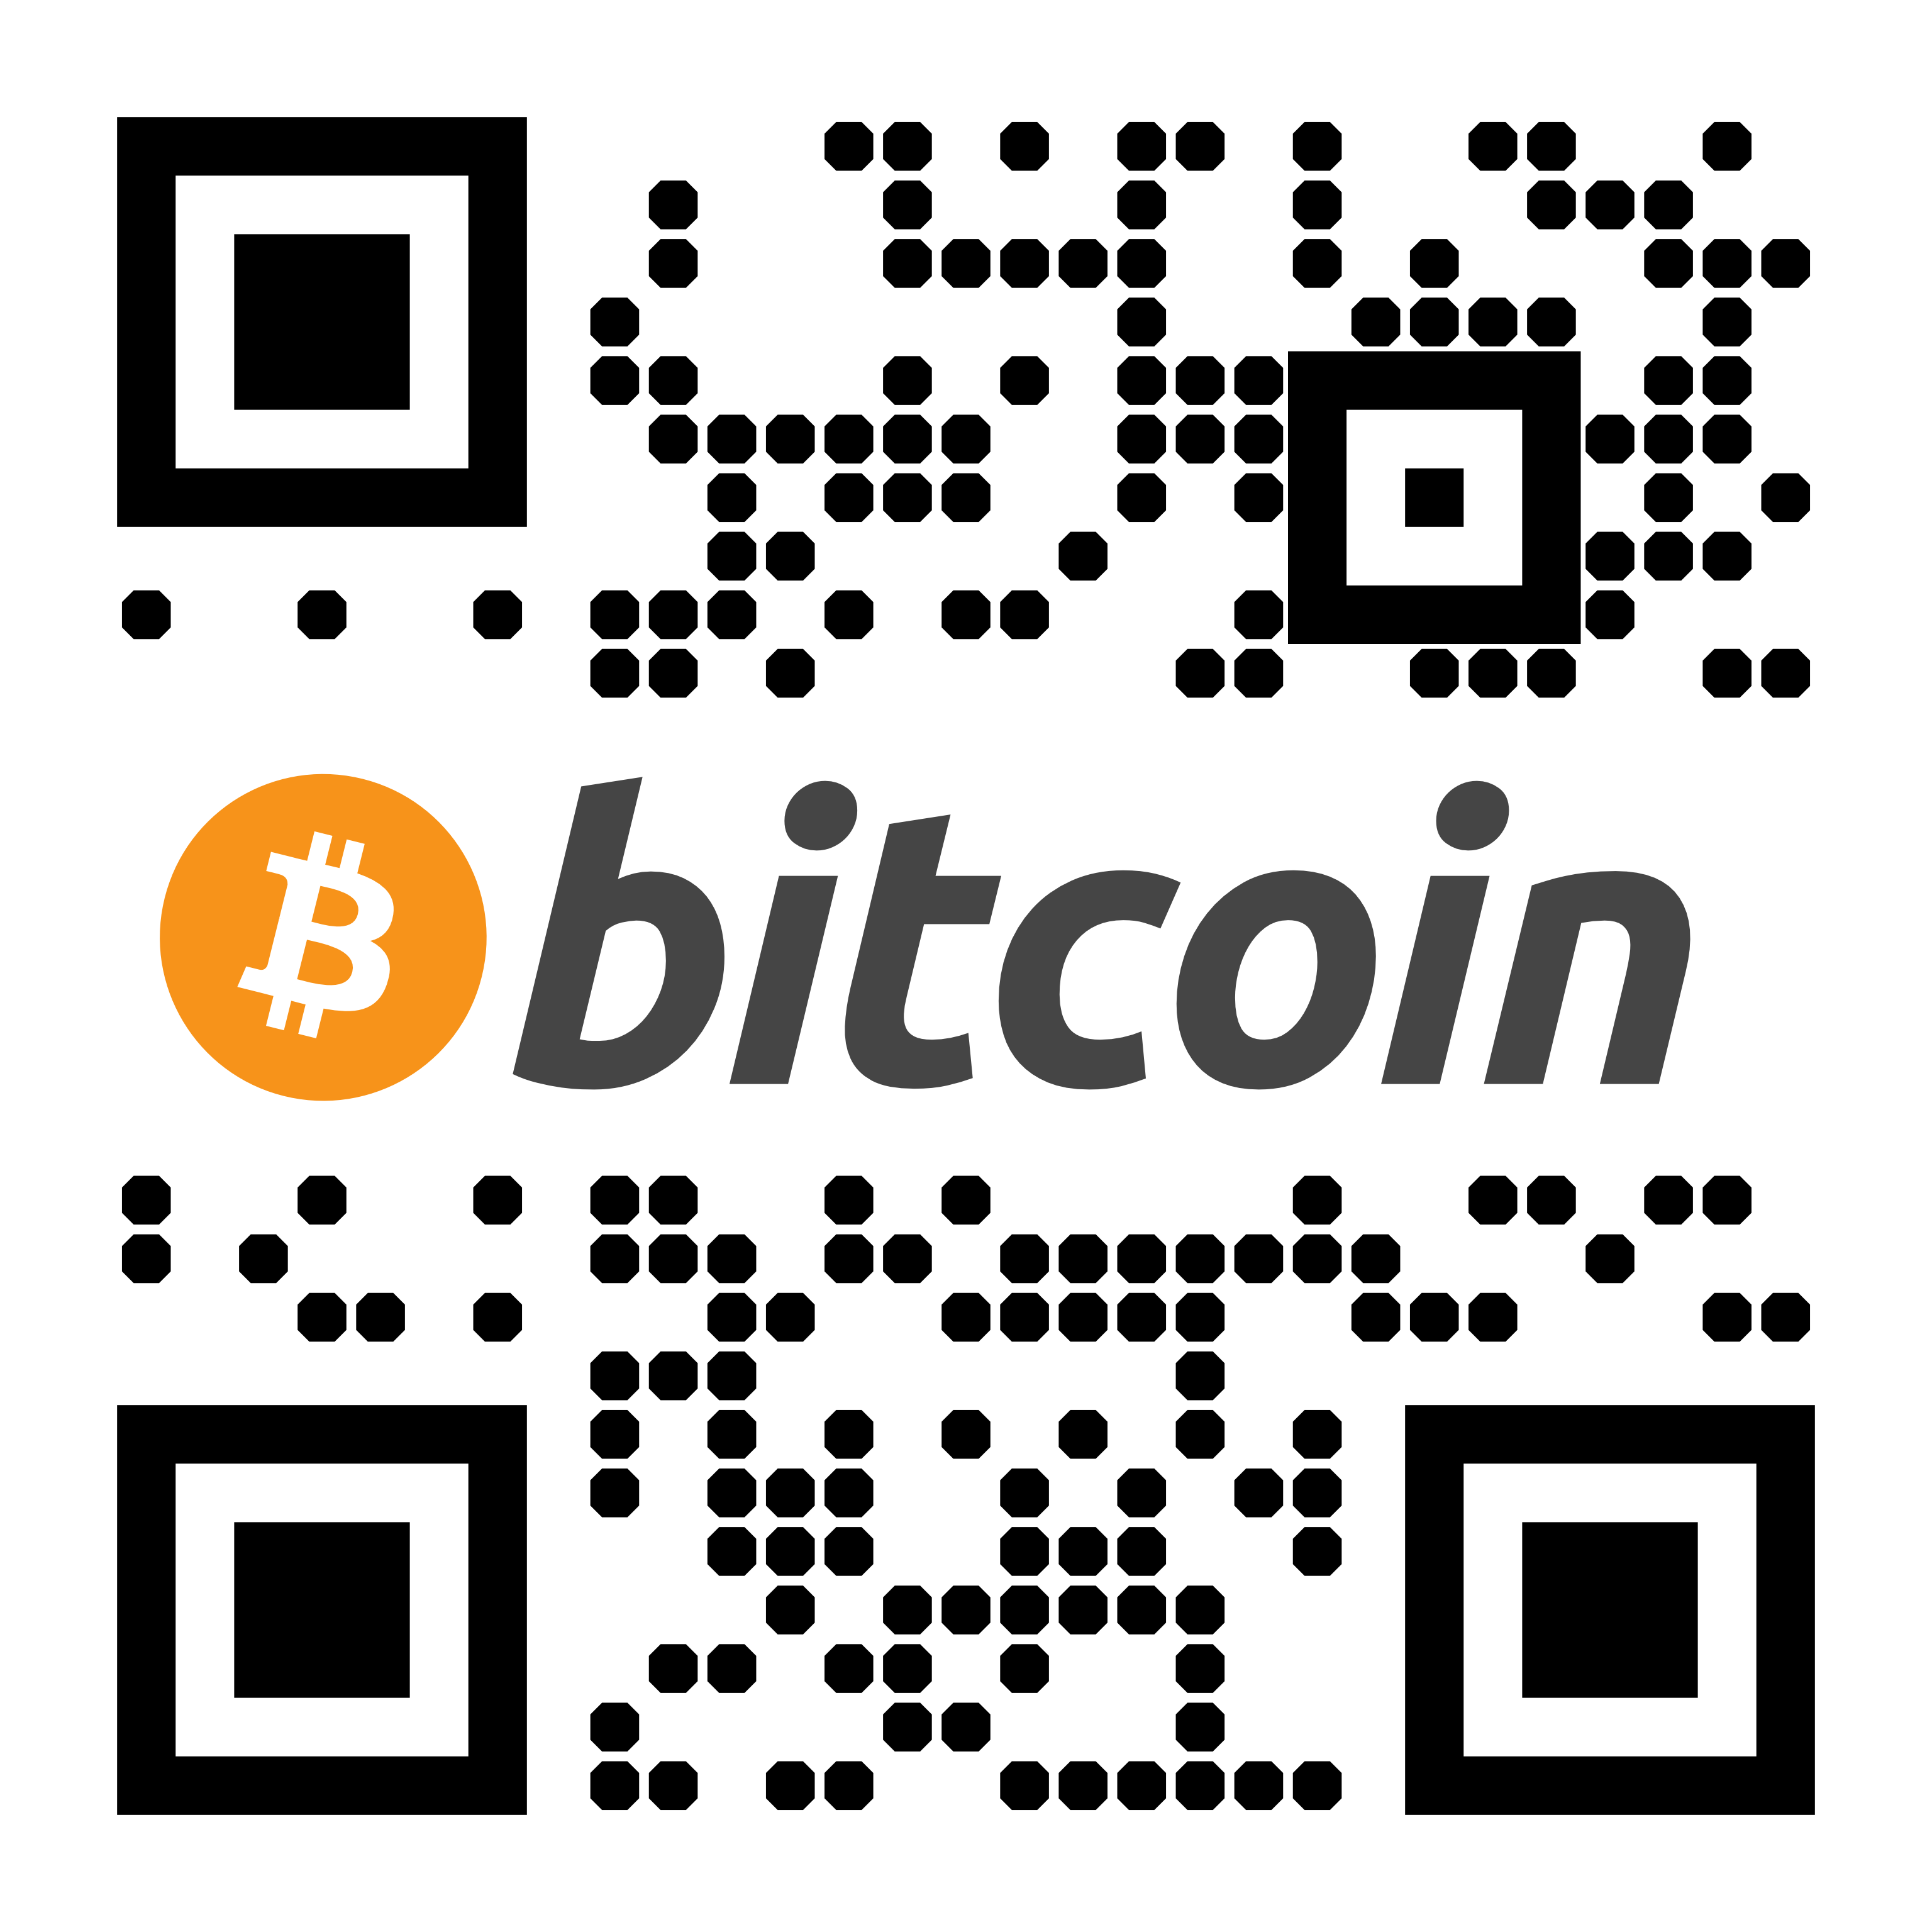 POOR-QUALITY-PREVIEW-of-ultimate-vectorized-bitcoin-qr-sticker.png